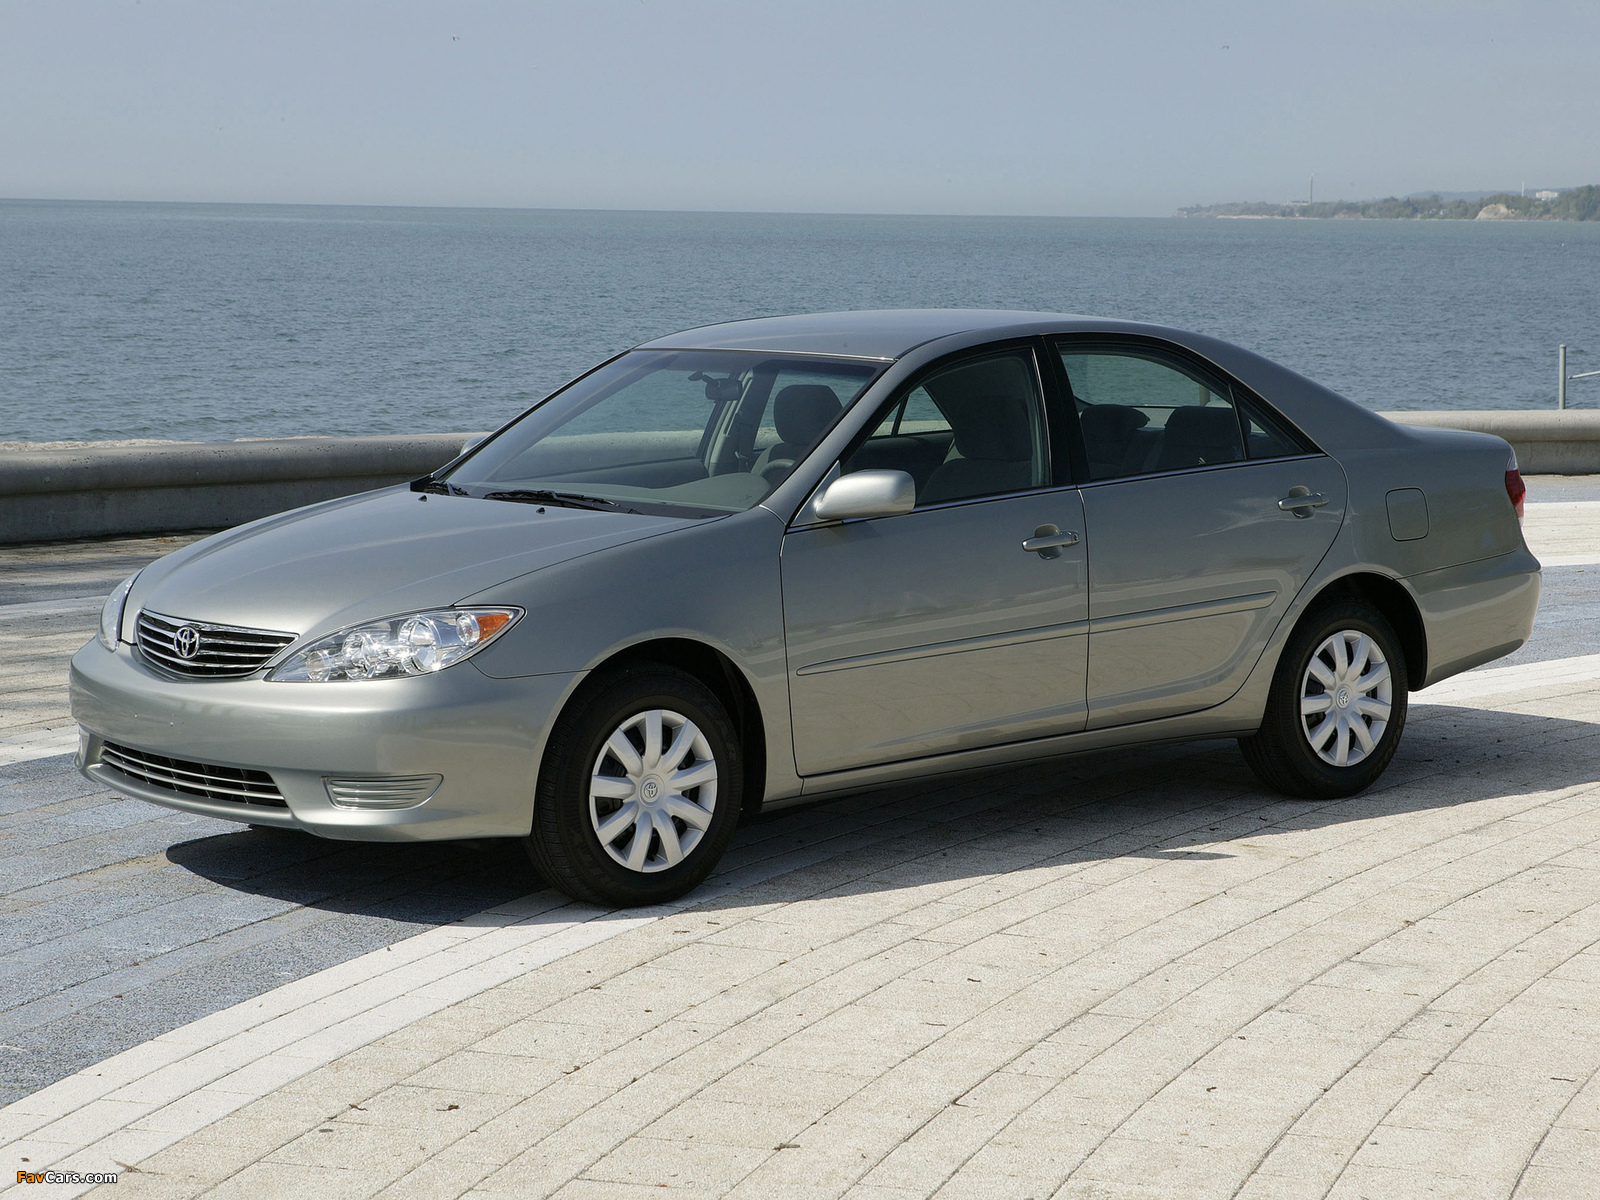 Toyota Camry Le Us Spec Acv30 2004 06 Wallpapers 1600x1200